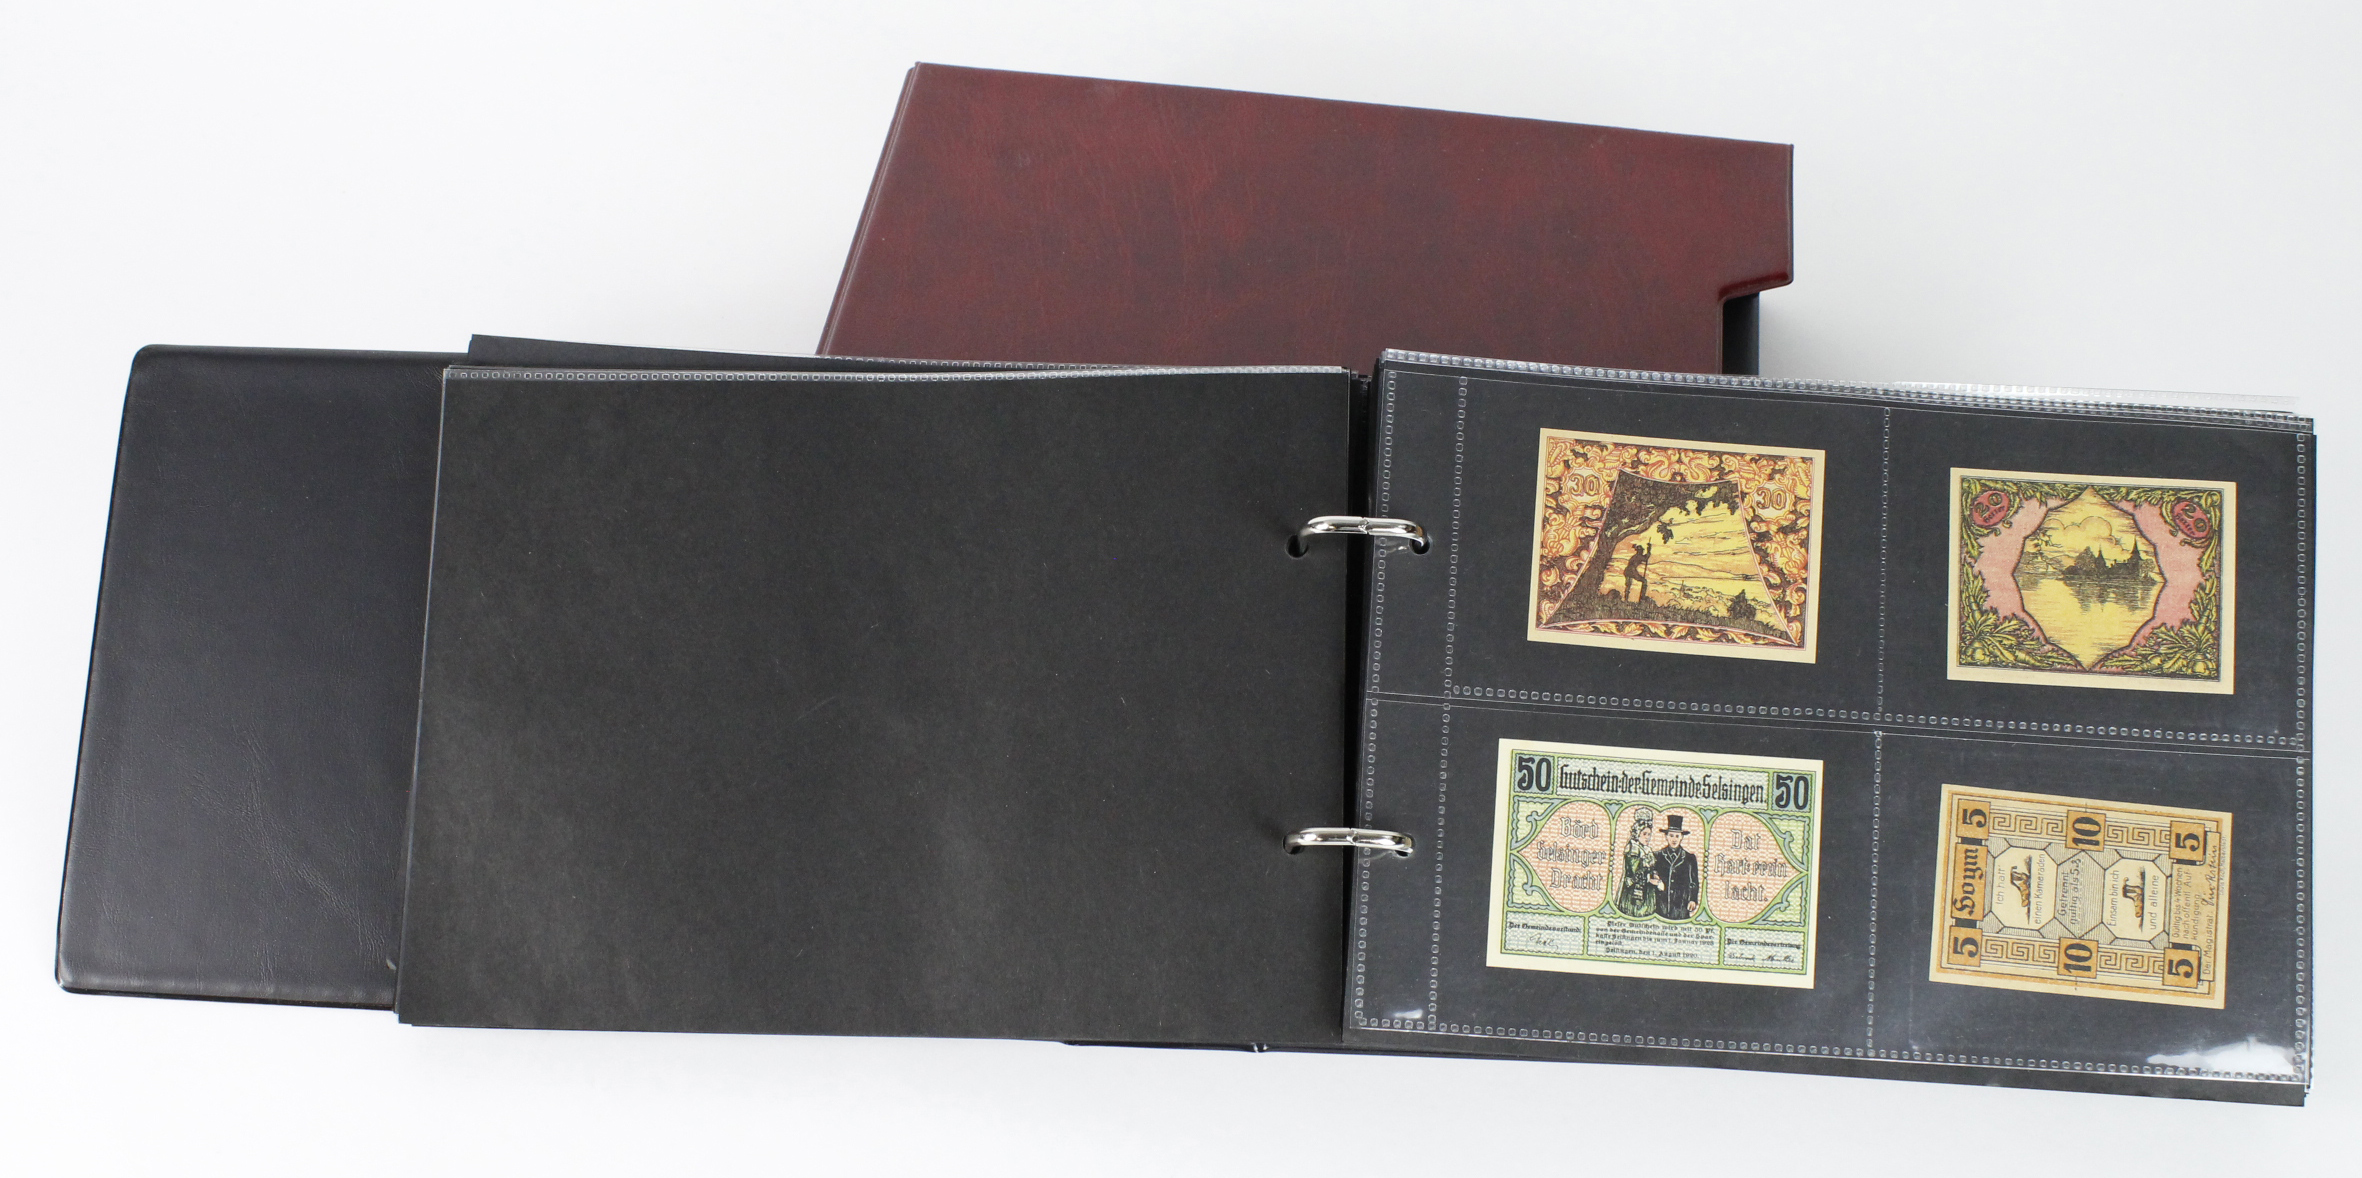 Germany Notgeld (203), a mixed collection of town/city sets and individual notes in a Notgeld album, - Image 2 of 2